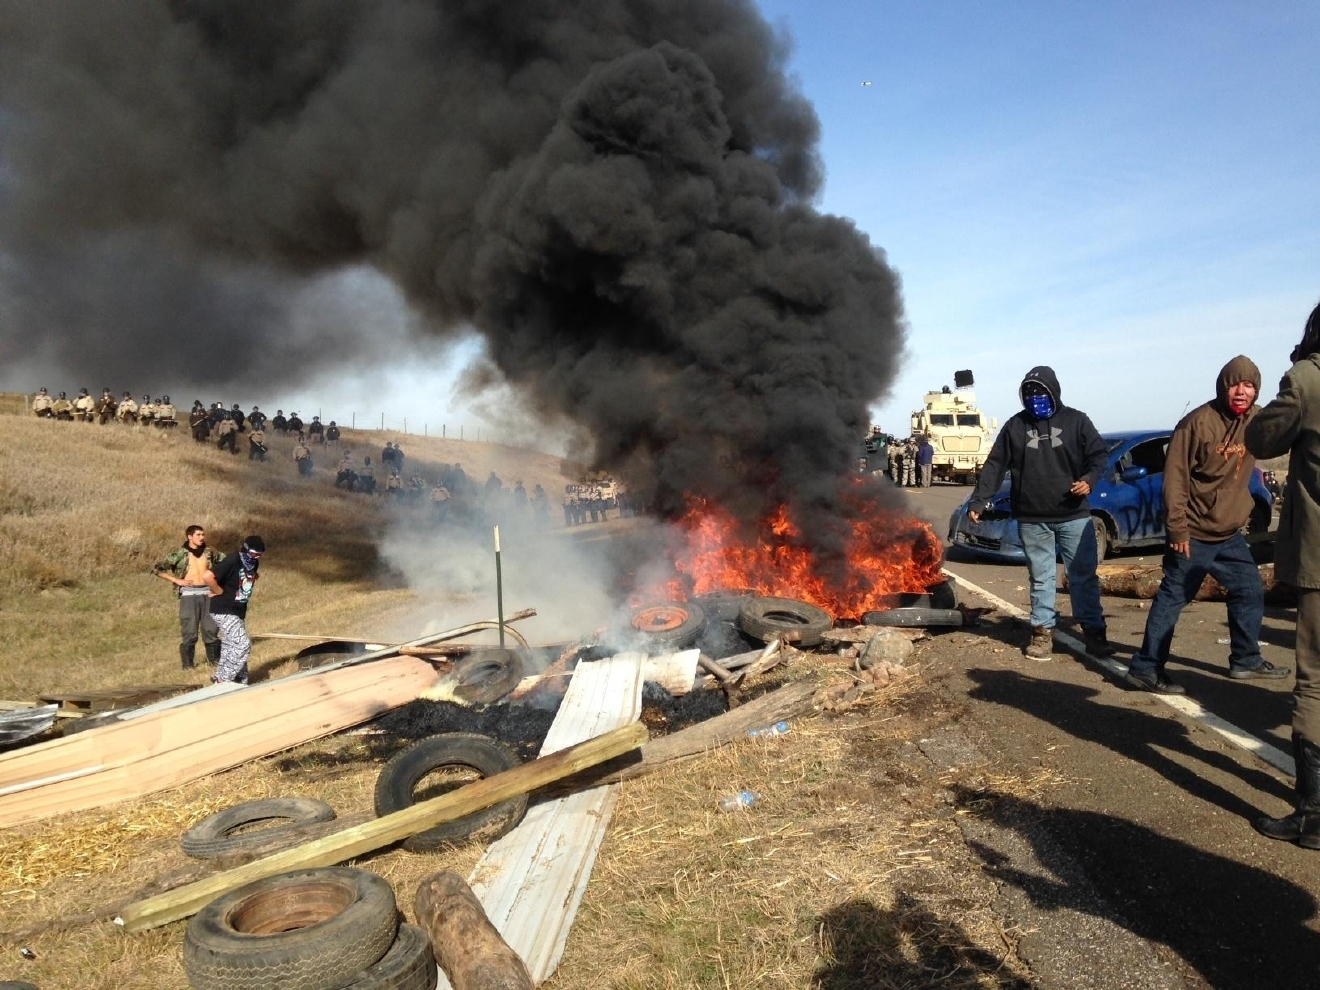 Dakota Access oil pipeline protesters burn debris as officers close in to force them from a camp on private land in the path of pipeline construction, Thursday, Oct. 27, 2016 near Cannon Ball, N.D. Soldiers and law enforcement officers dressed in riot gear began arresting protesters who had set up a camp on private land to block construction of the Dakota Access oil pipeline. (AP Photo/James MacPherson)